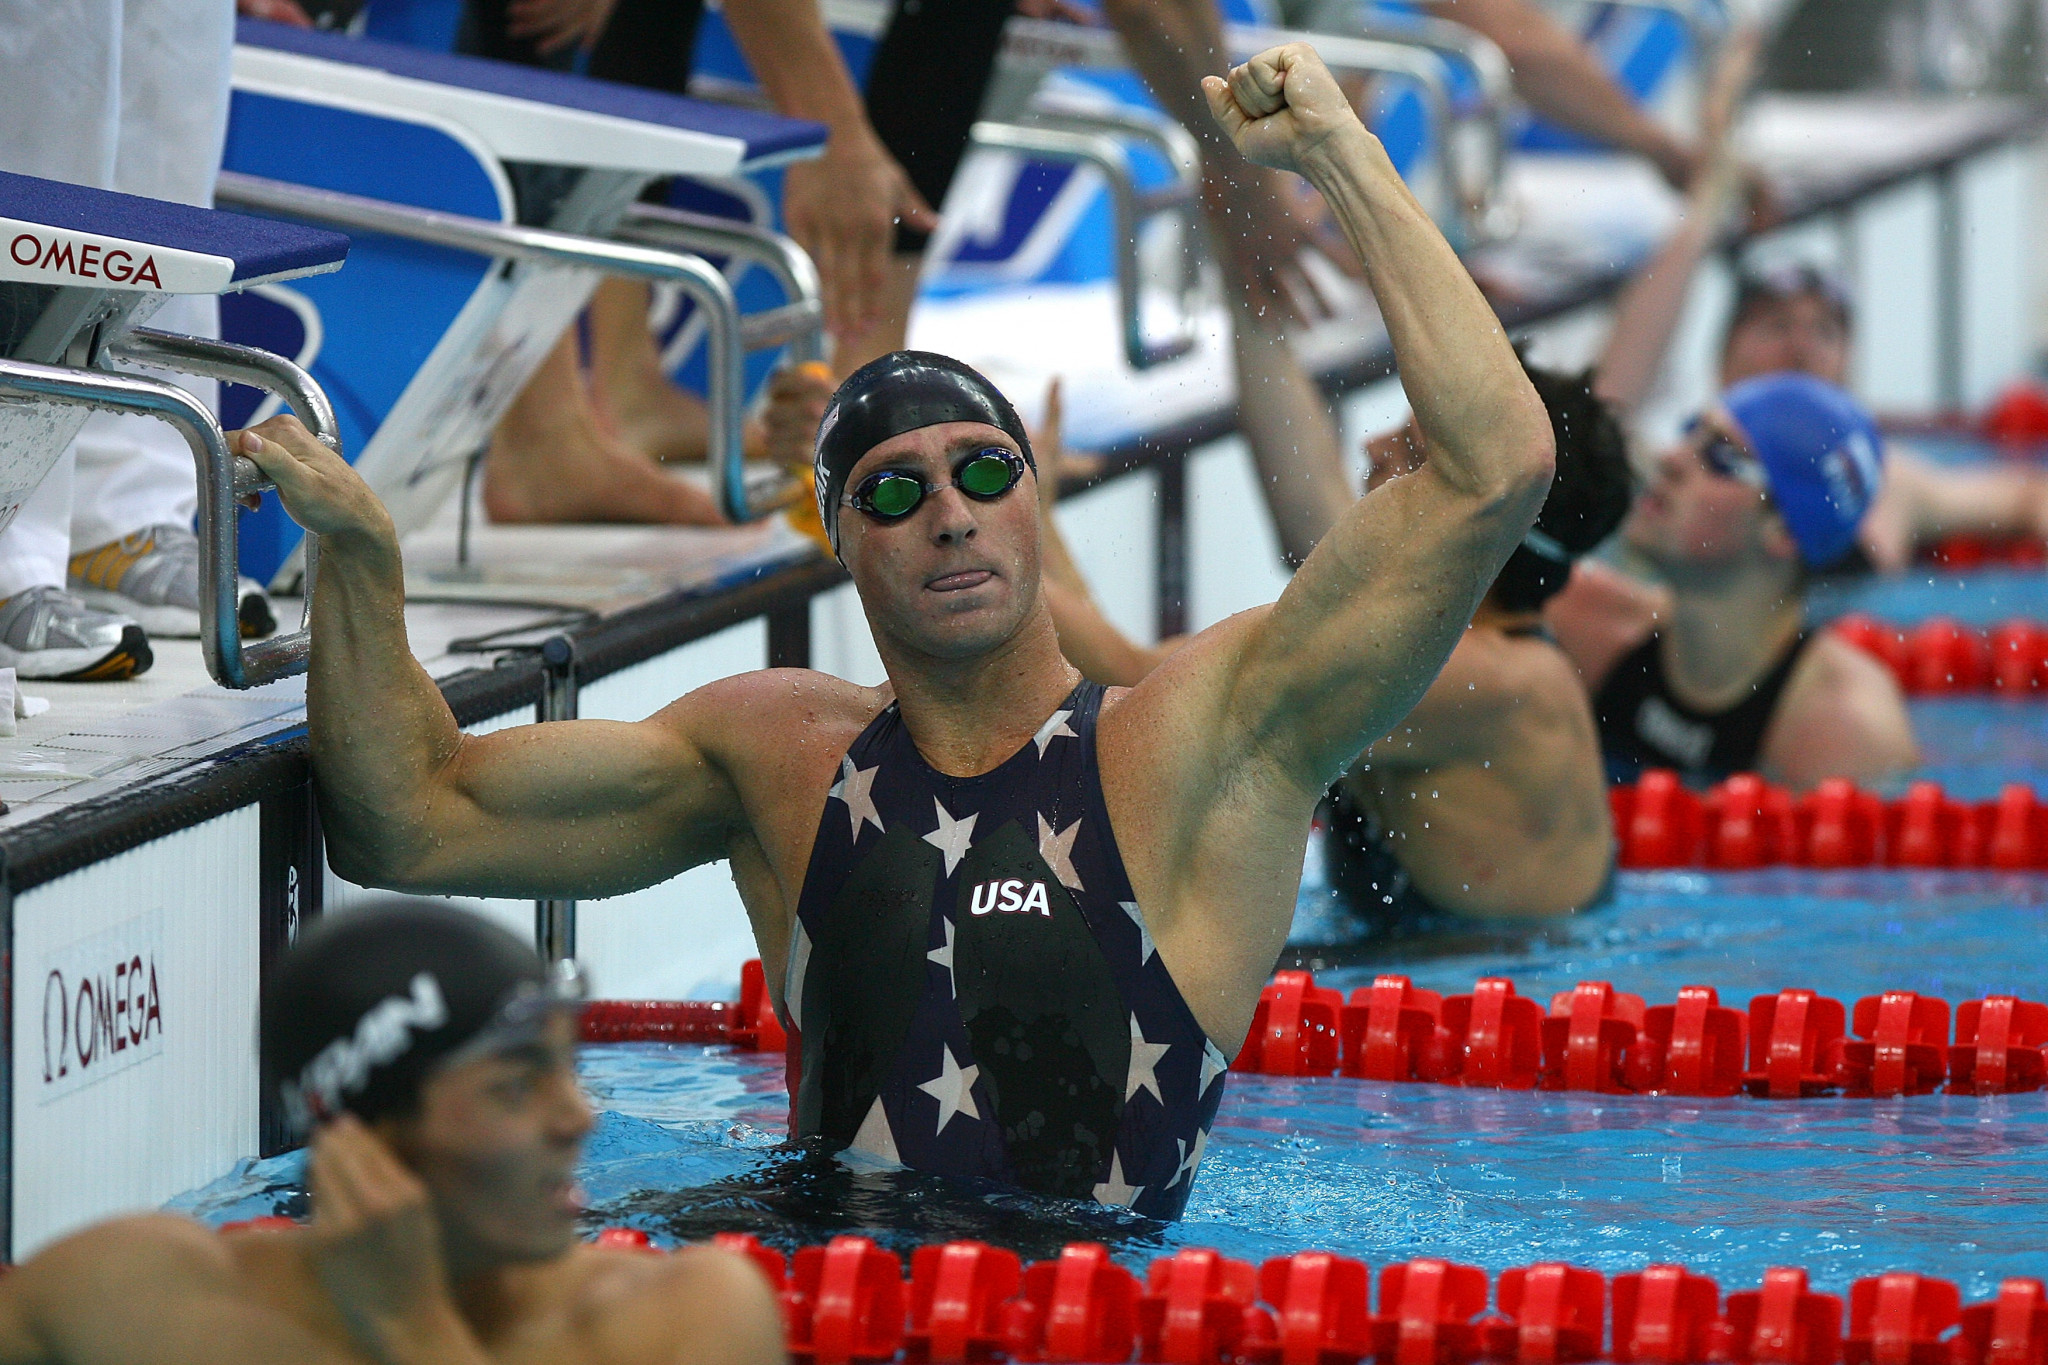 The Speedo LZR Racer suit was worn at Beijing 2008 before being banned ©Getty Images